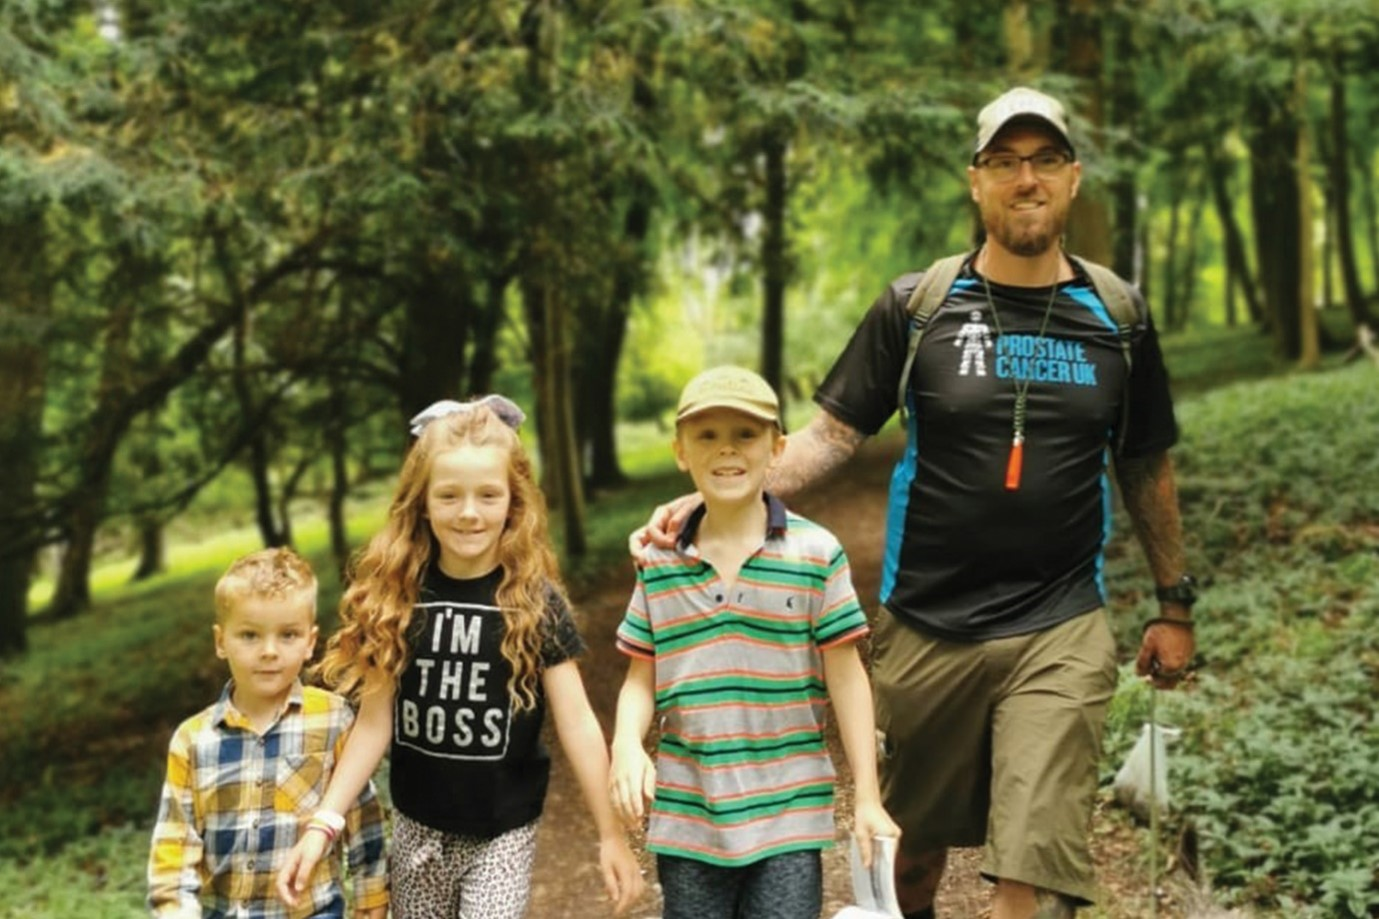 Image of a man in a Prostate Cancer UK t-shirt with three children, walking outside